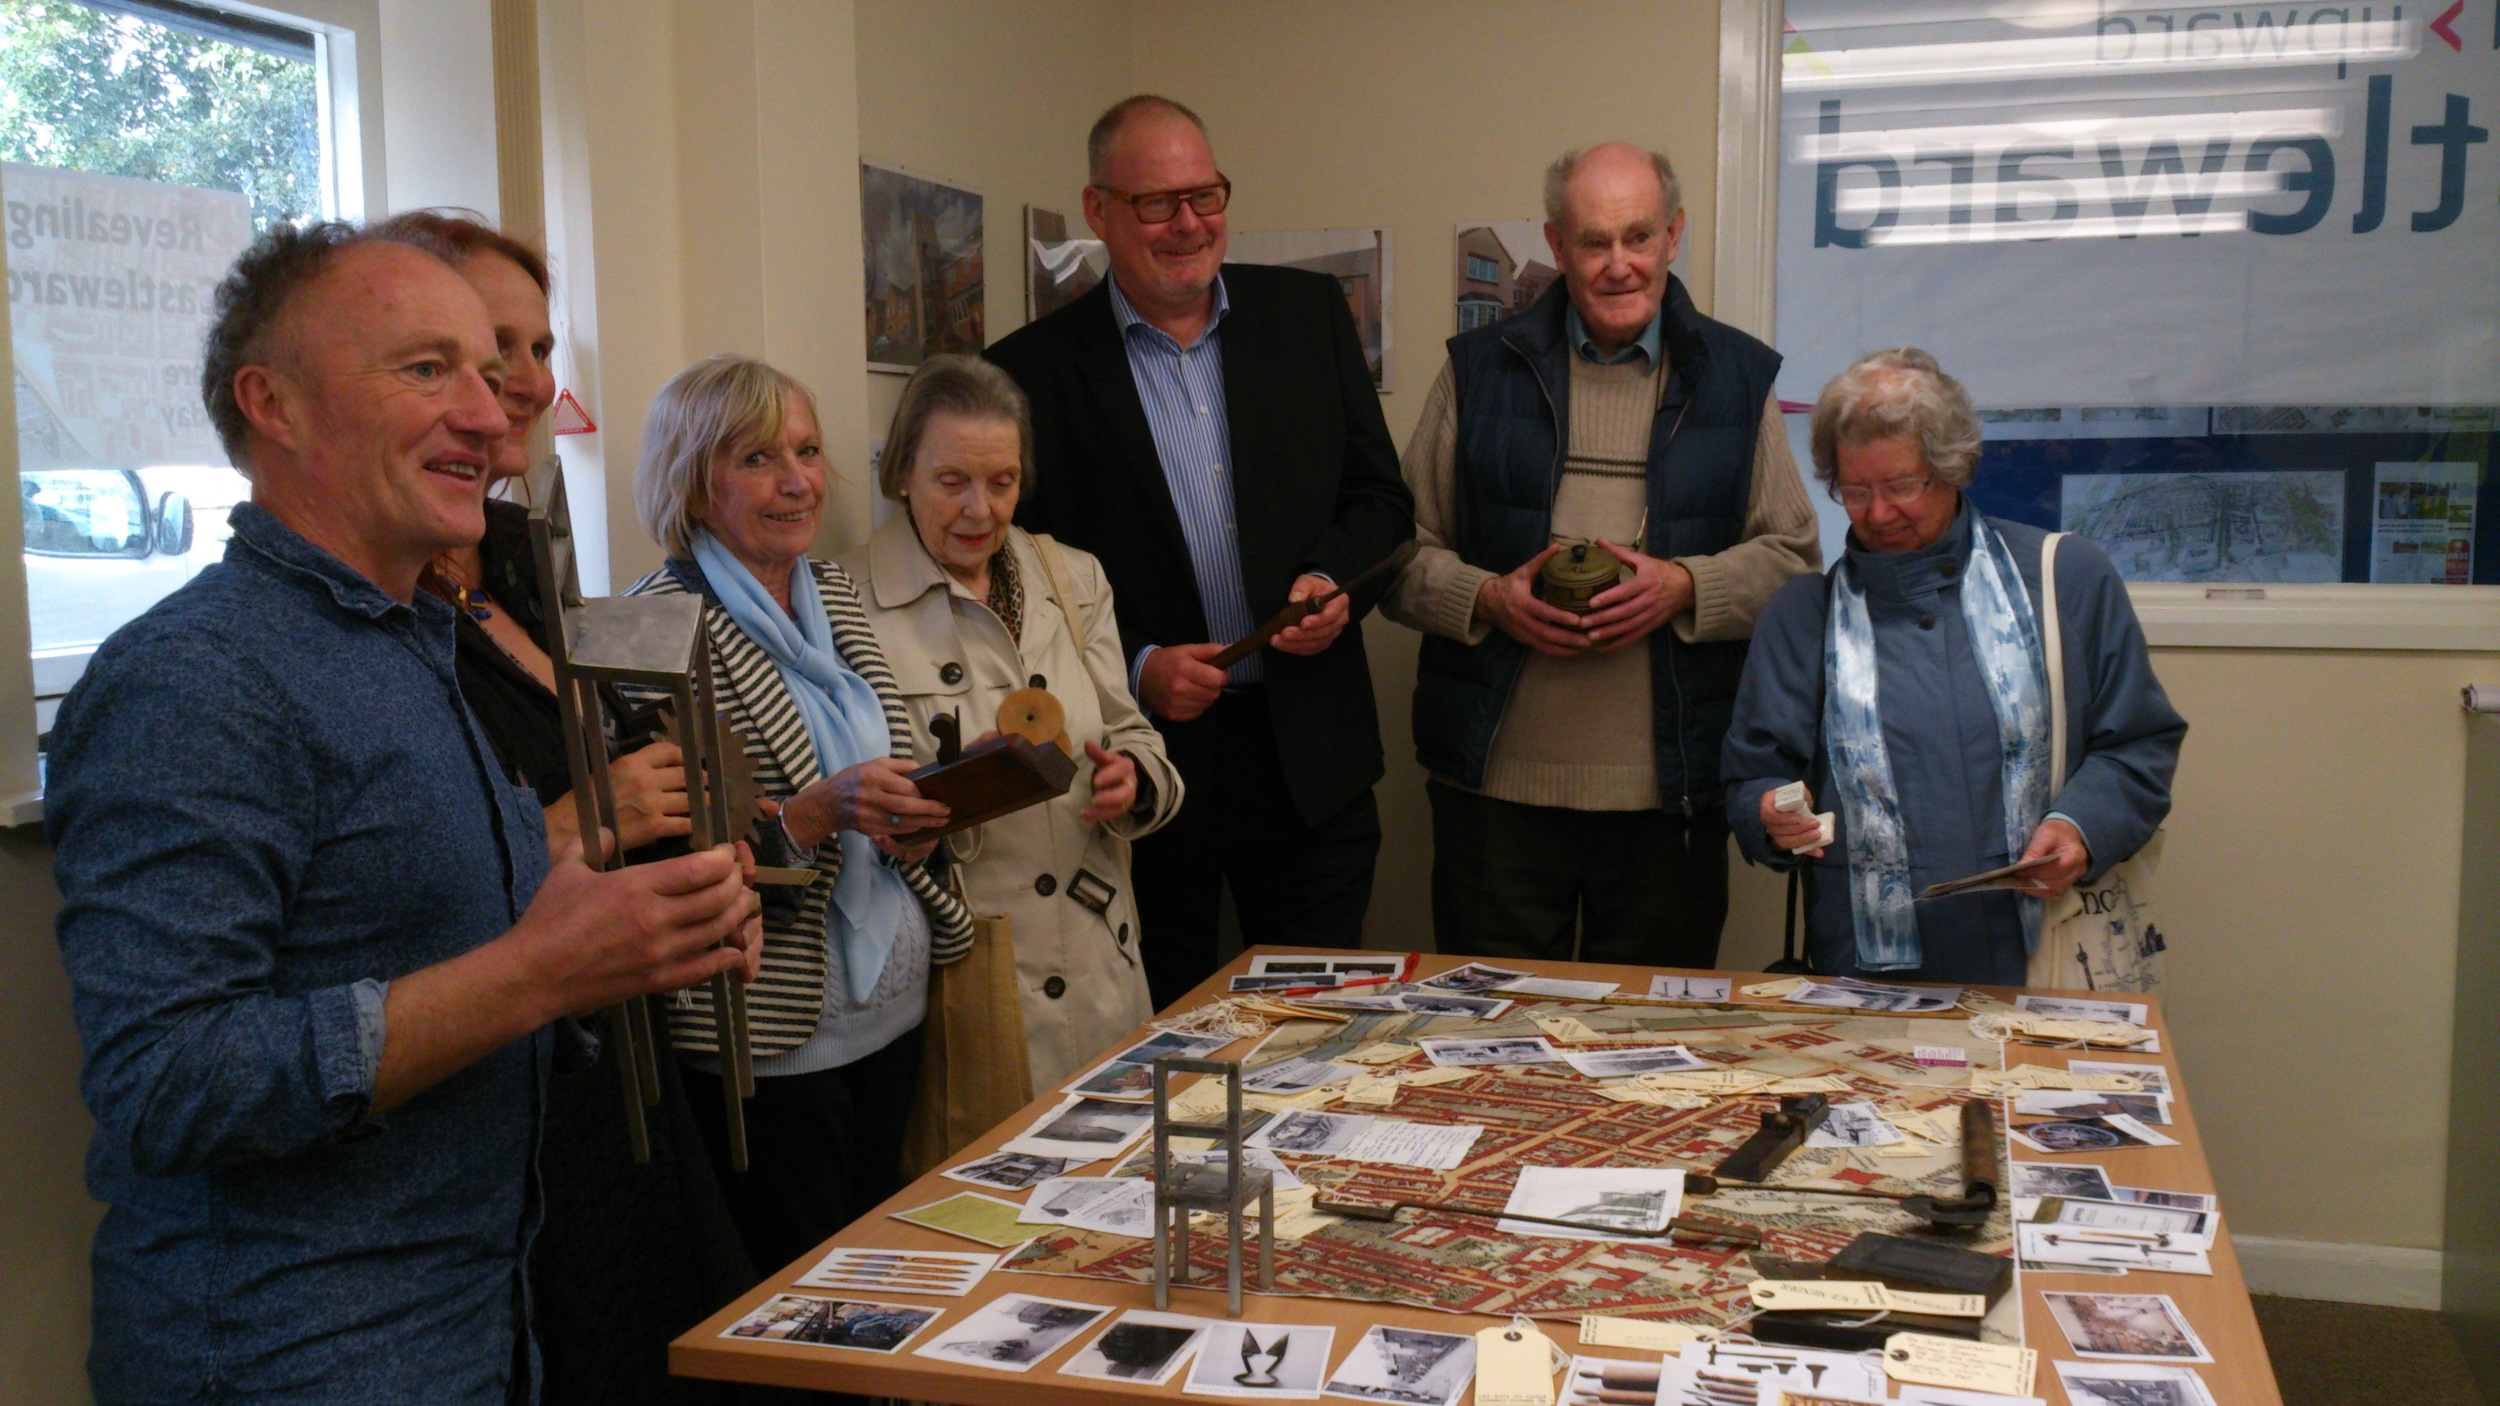 Artists Bernie Rutter and Denis O'Connor at one of the consultation workshops 2014